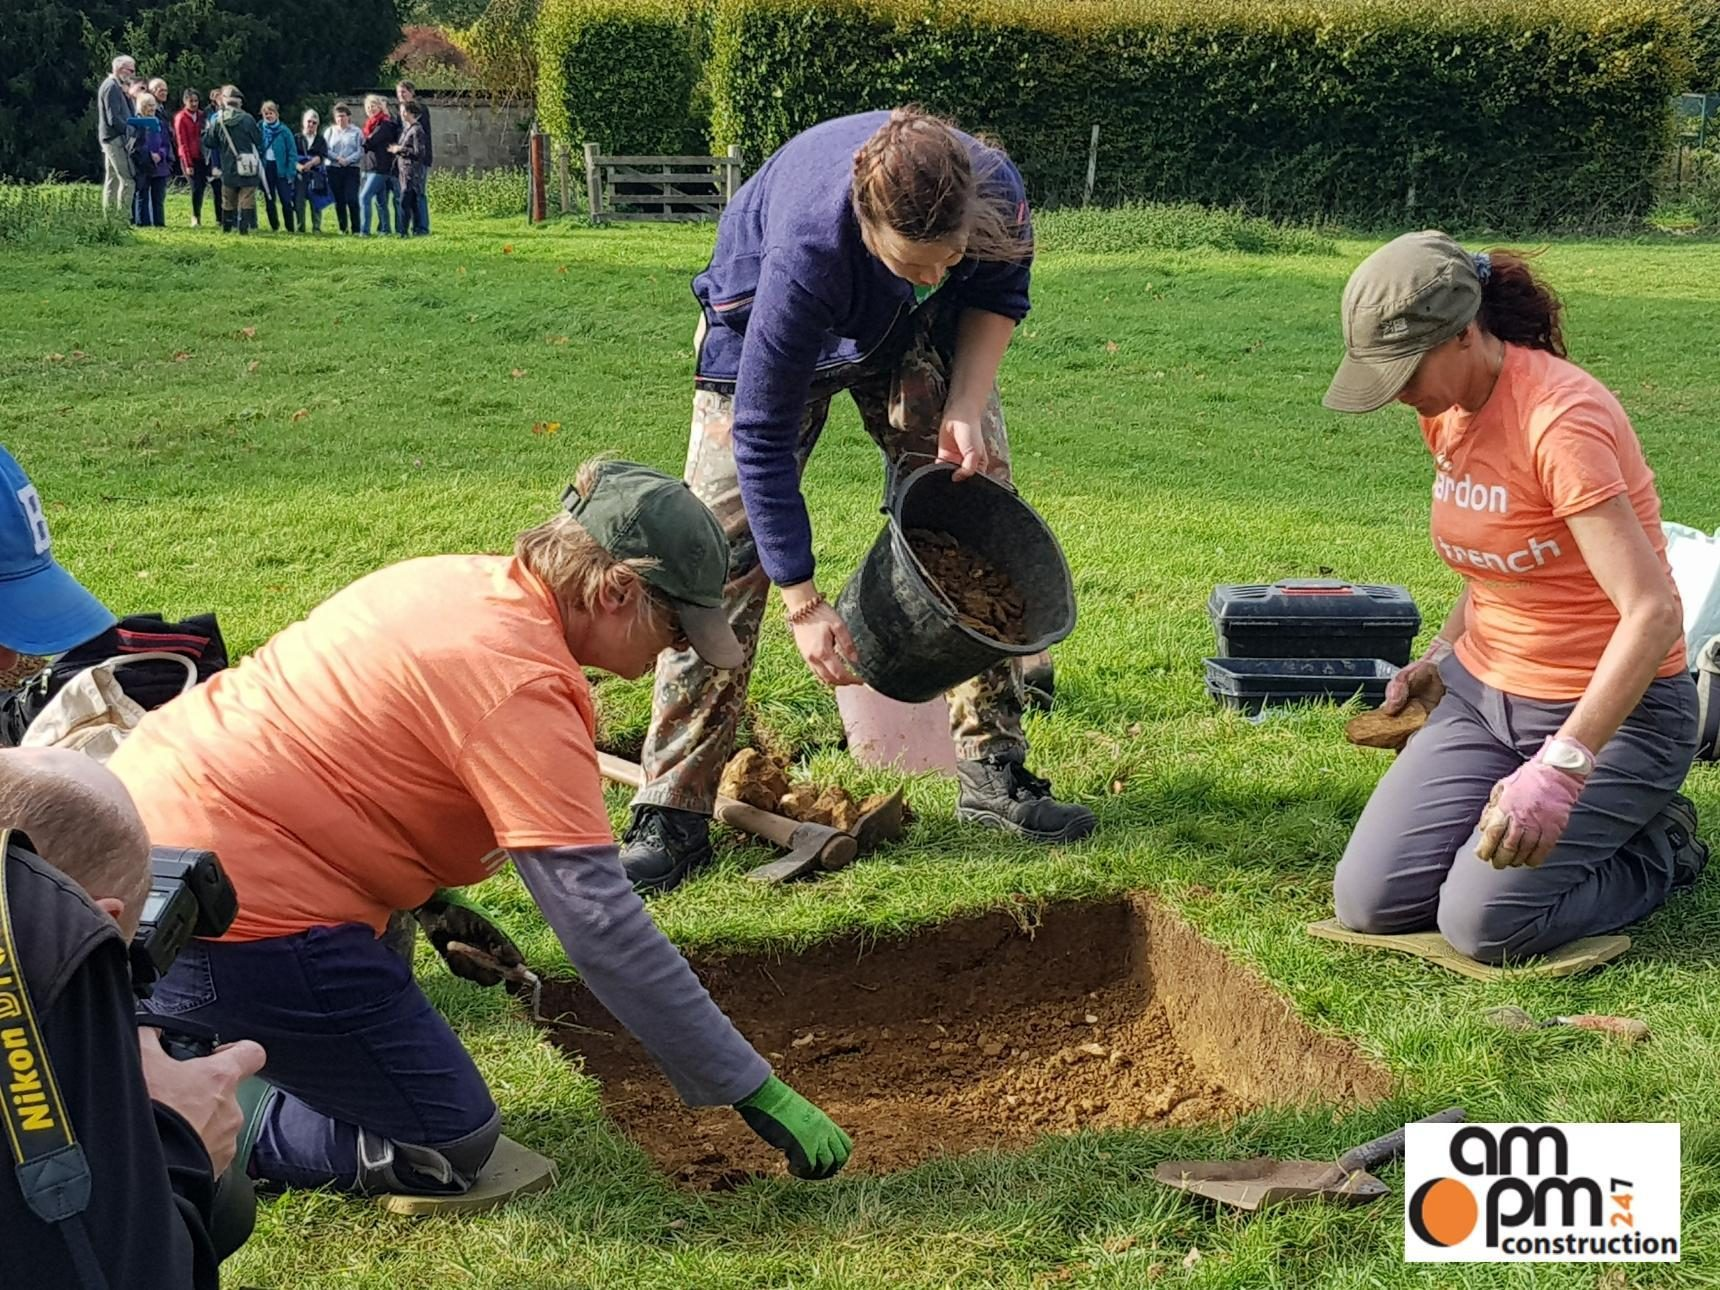 3 people sort through a small square dig site